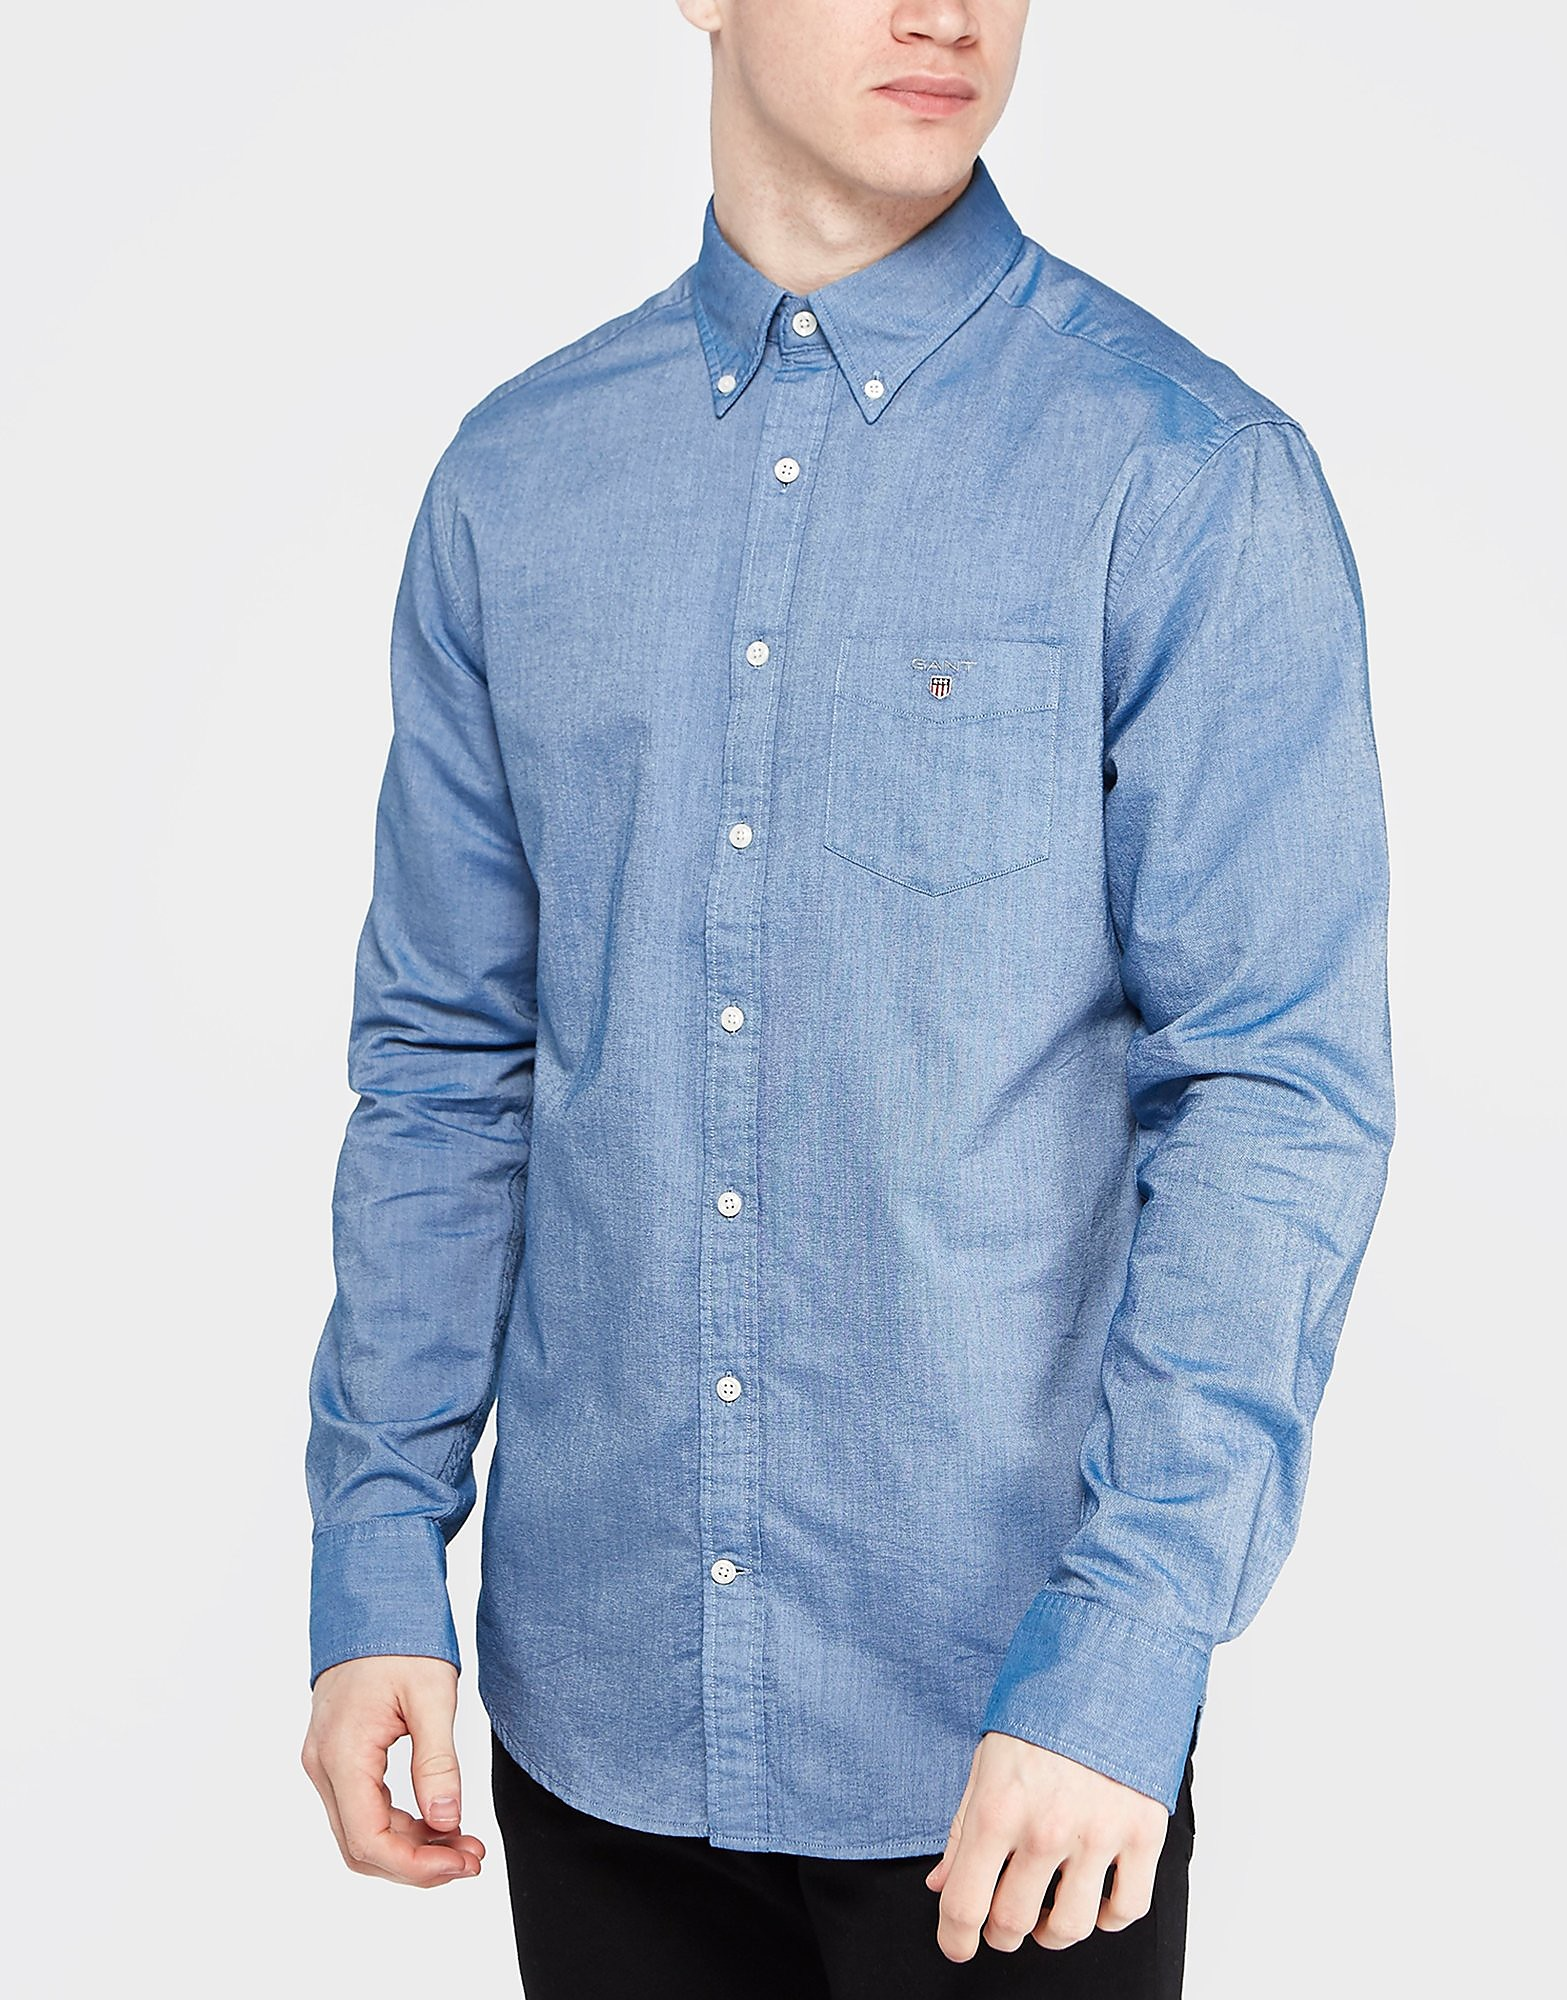 GANT Long Sleeve Chambray Shirt